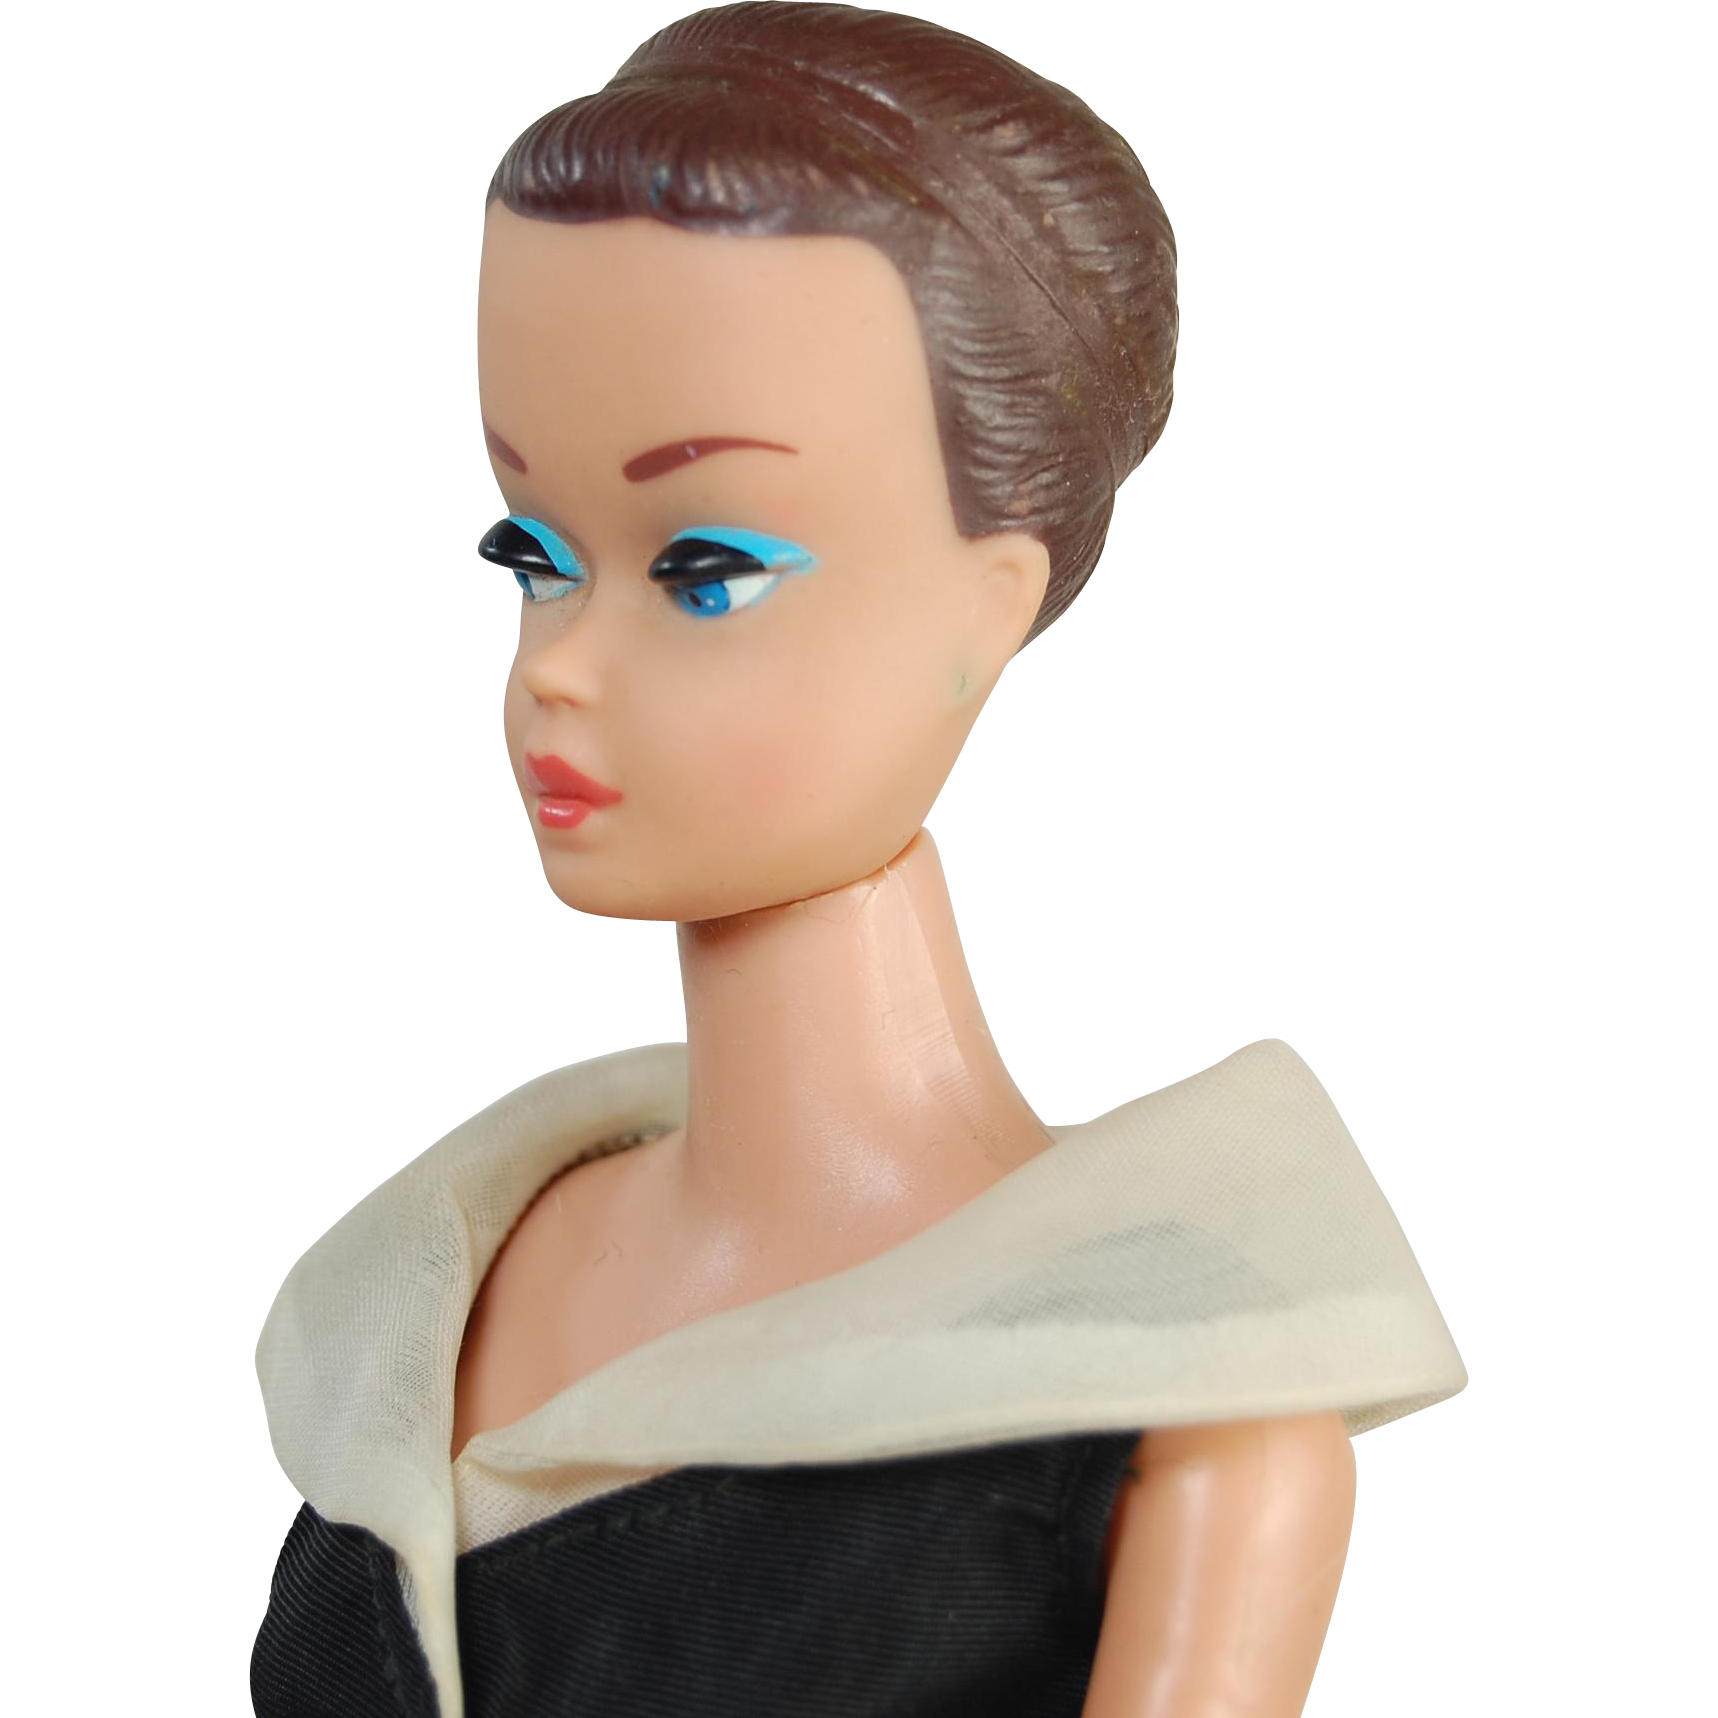 Vintage Fashion Queen Barbie After Five dress brown painted hair no wig 1964 patented body good paint